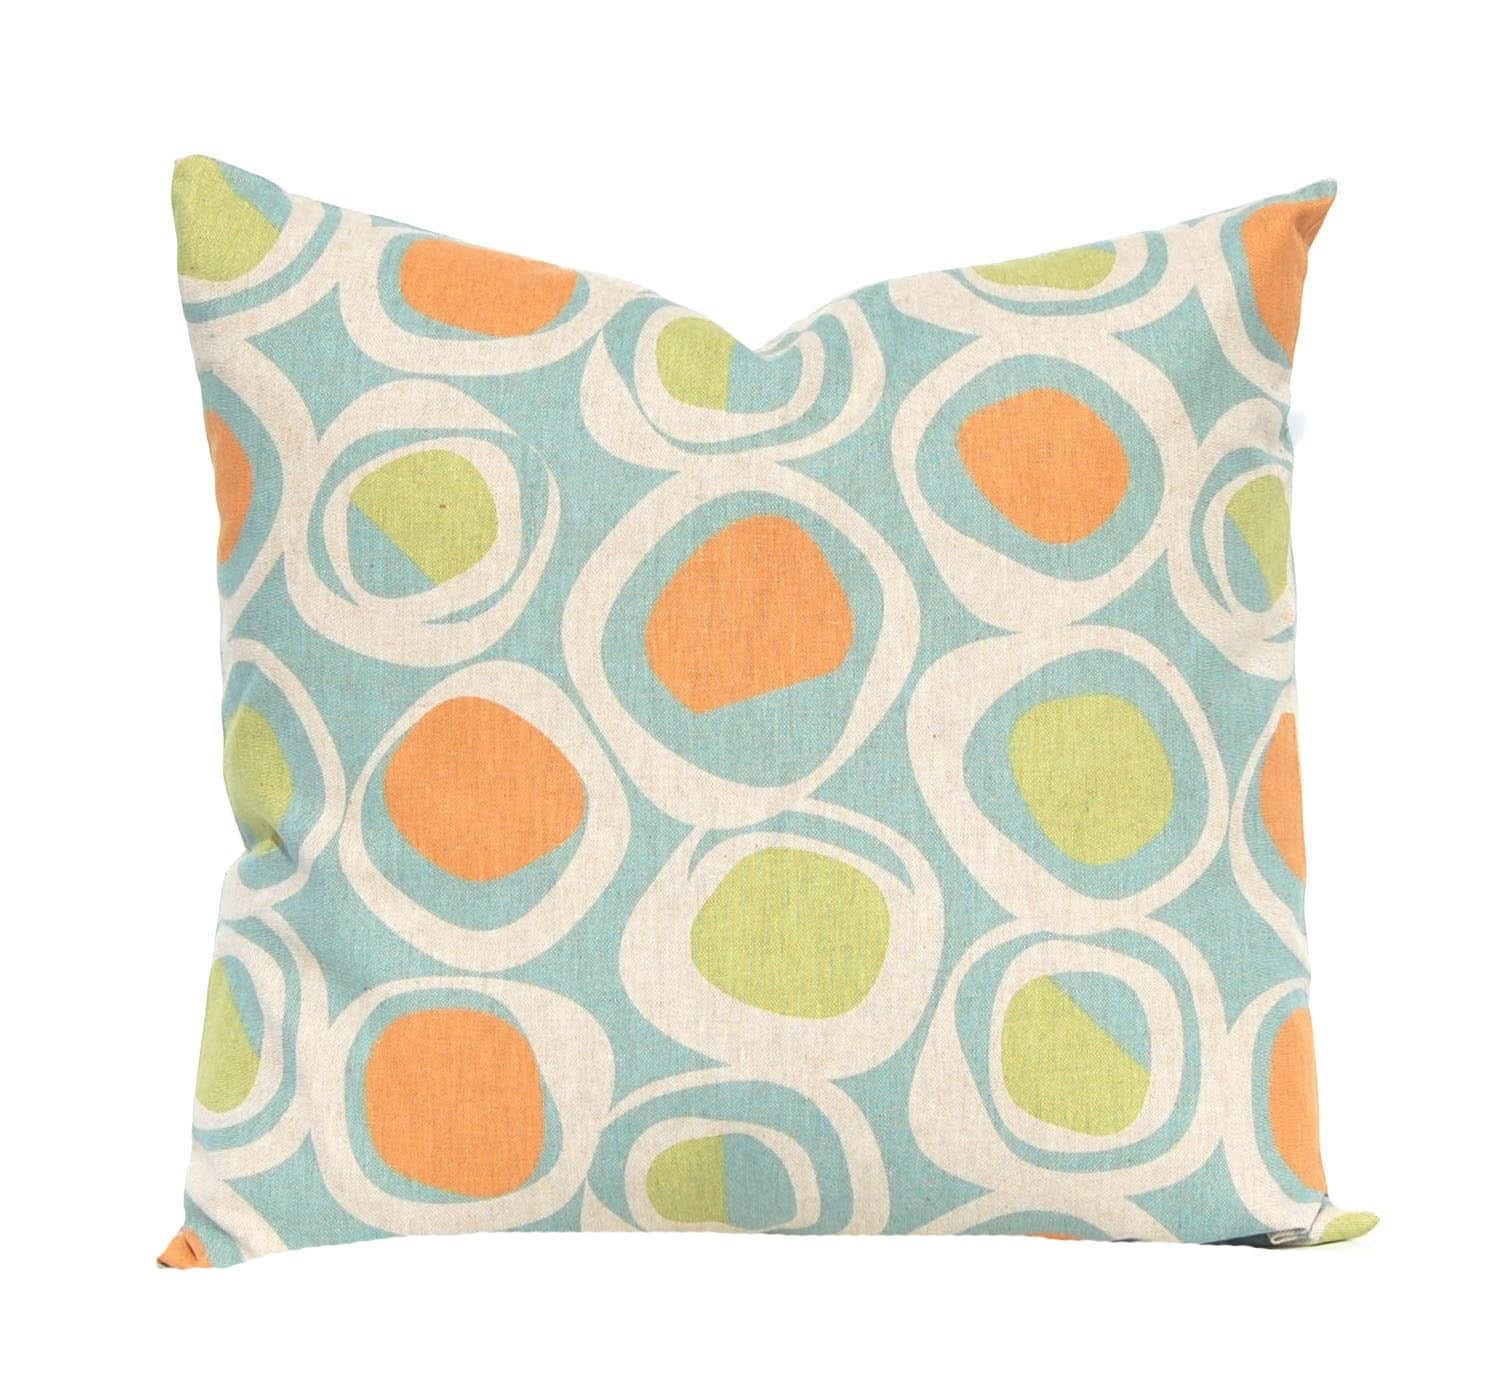 Decorative Pillows Etsy : Throw Pillow Covers Fall Pillow Covers by CompanyTwentySix on Etsy